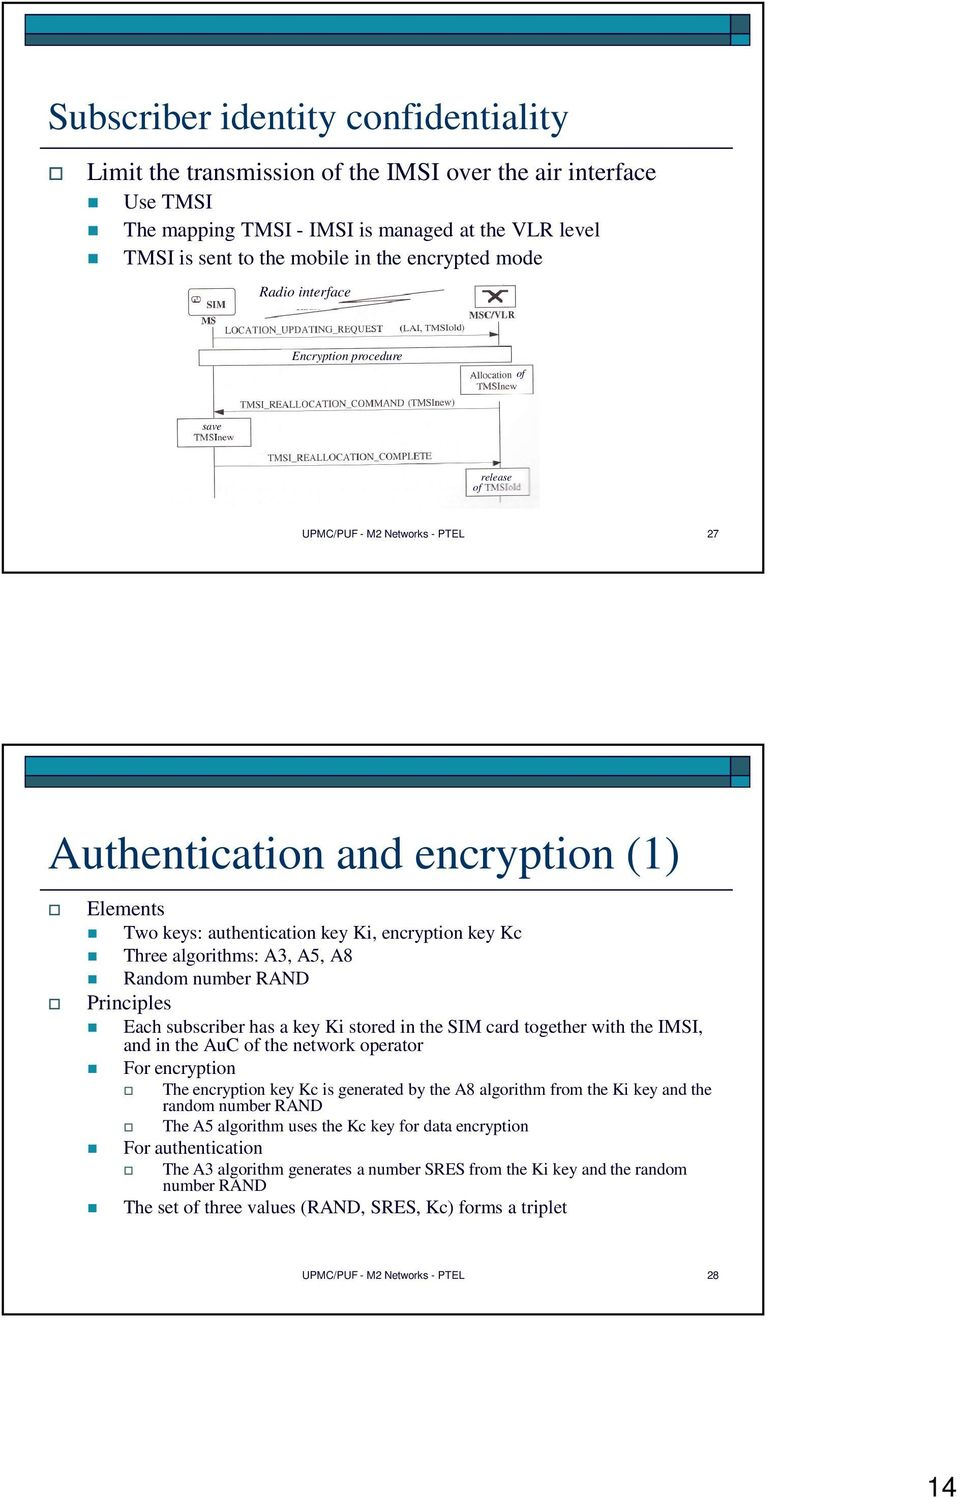 algorithms: A3, A5, A8 Random number RAND Principles Each subscriber has a key Ki stored in the SIM card together with the IMSI, and in the AuC of the network operator For encryption The encryption